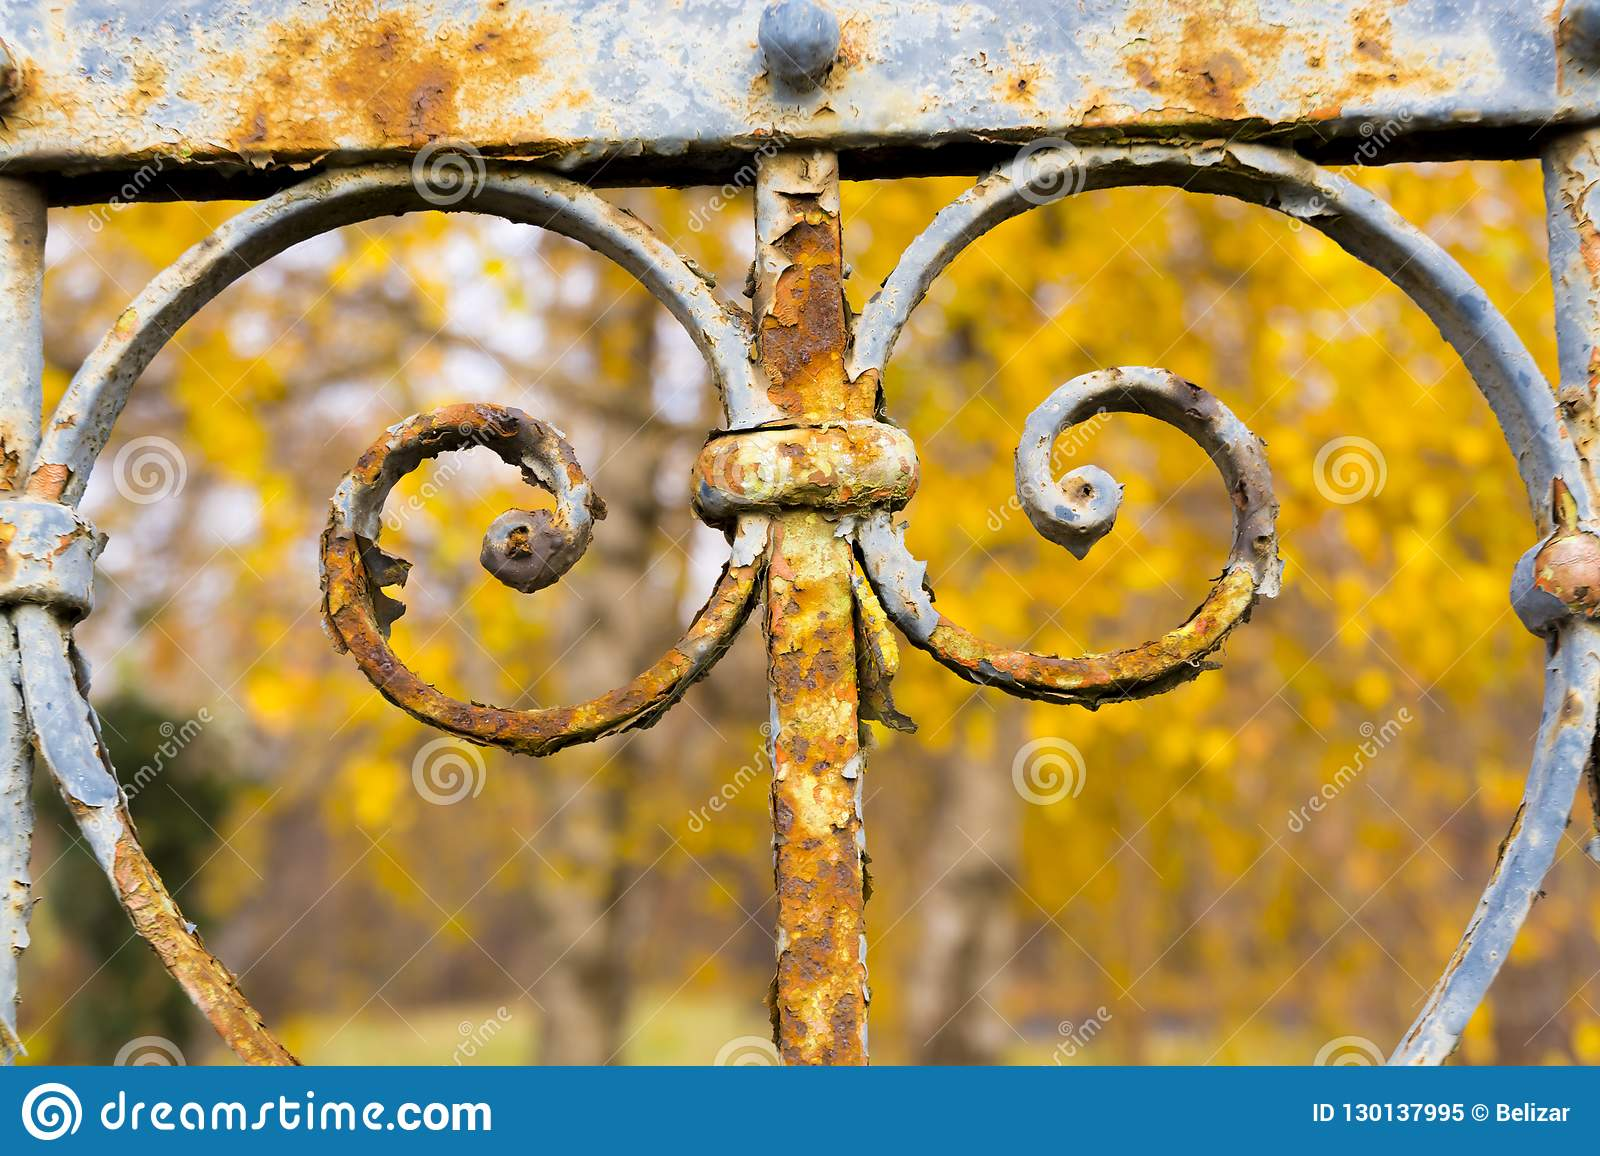 Rusty fence of an old garden